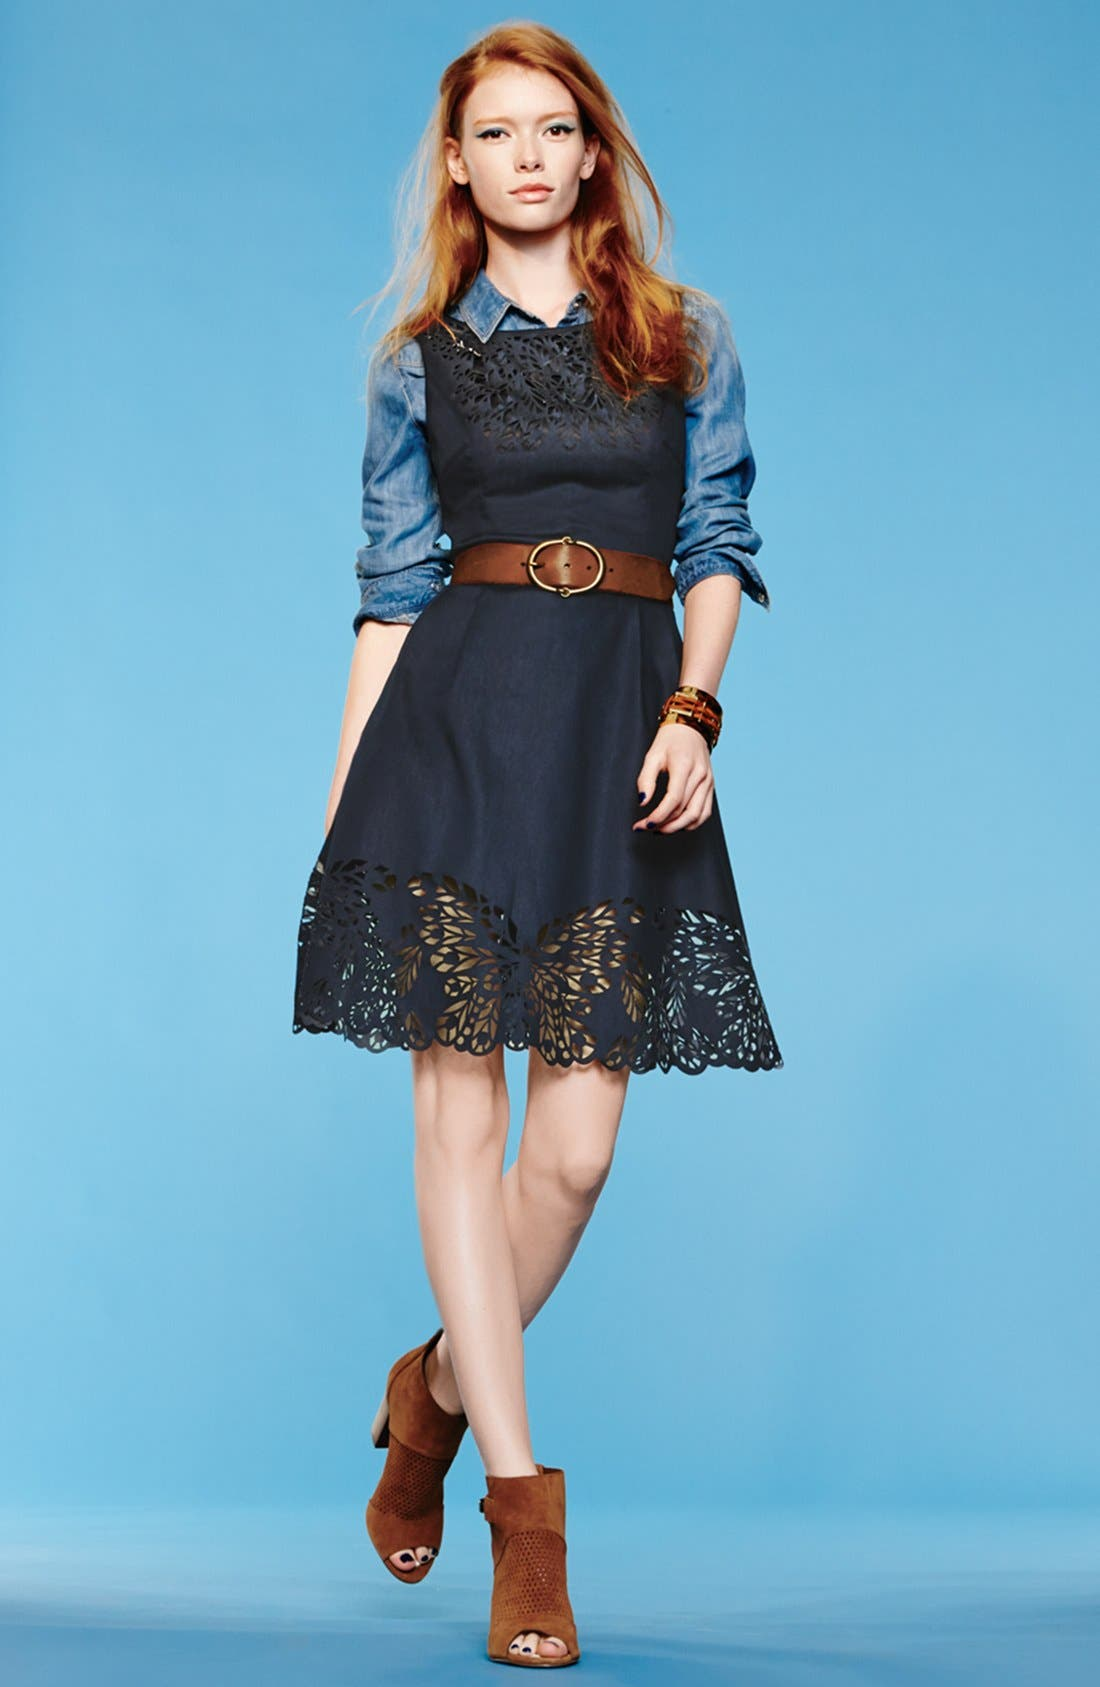 Alternate Image 1 Selected - Betsey Johnson Dress, Paige Denim Shirt & Accessories